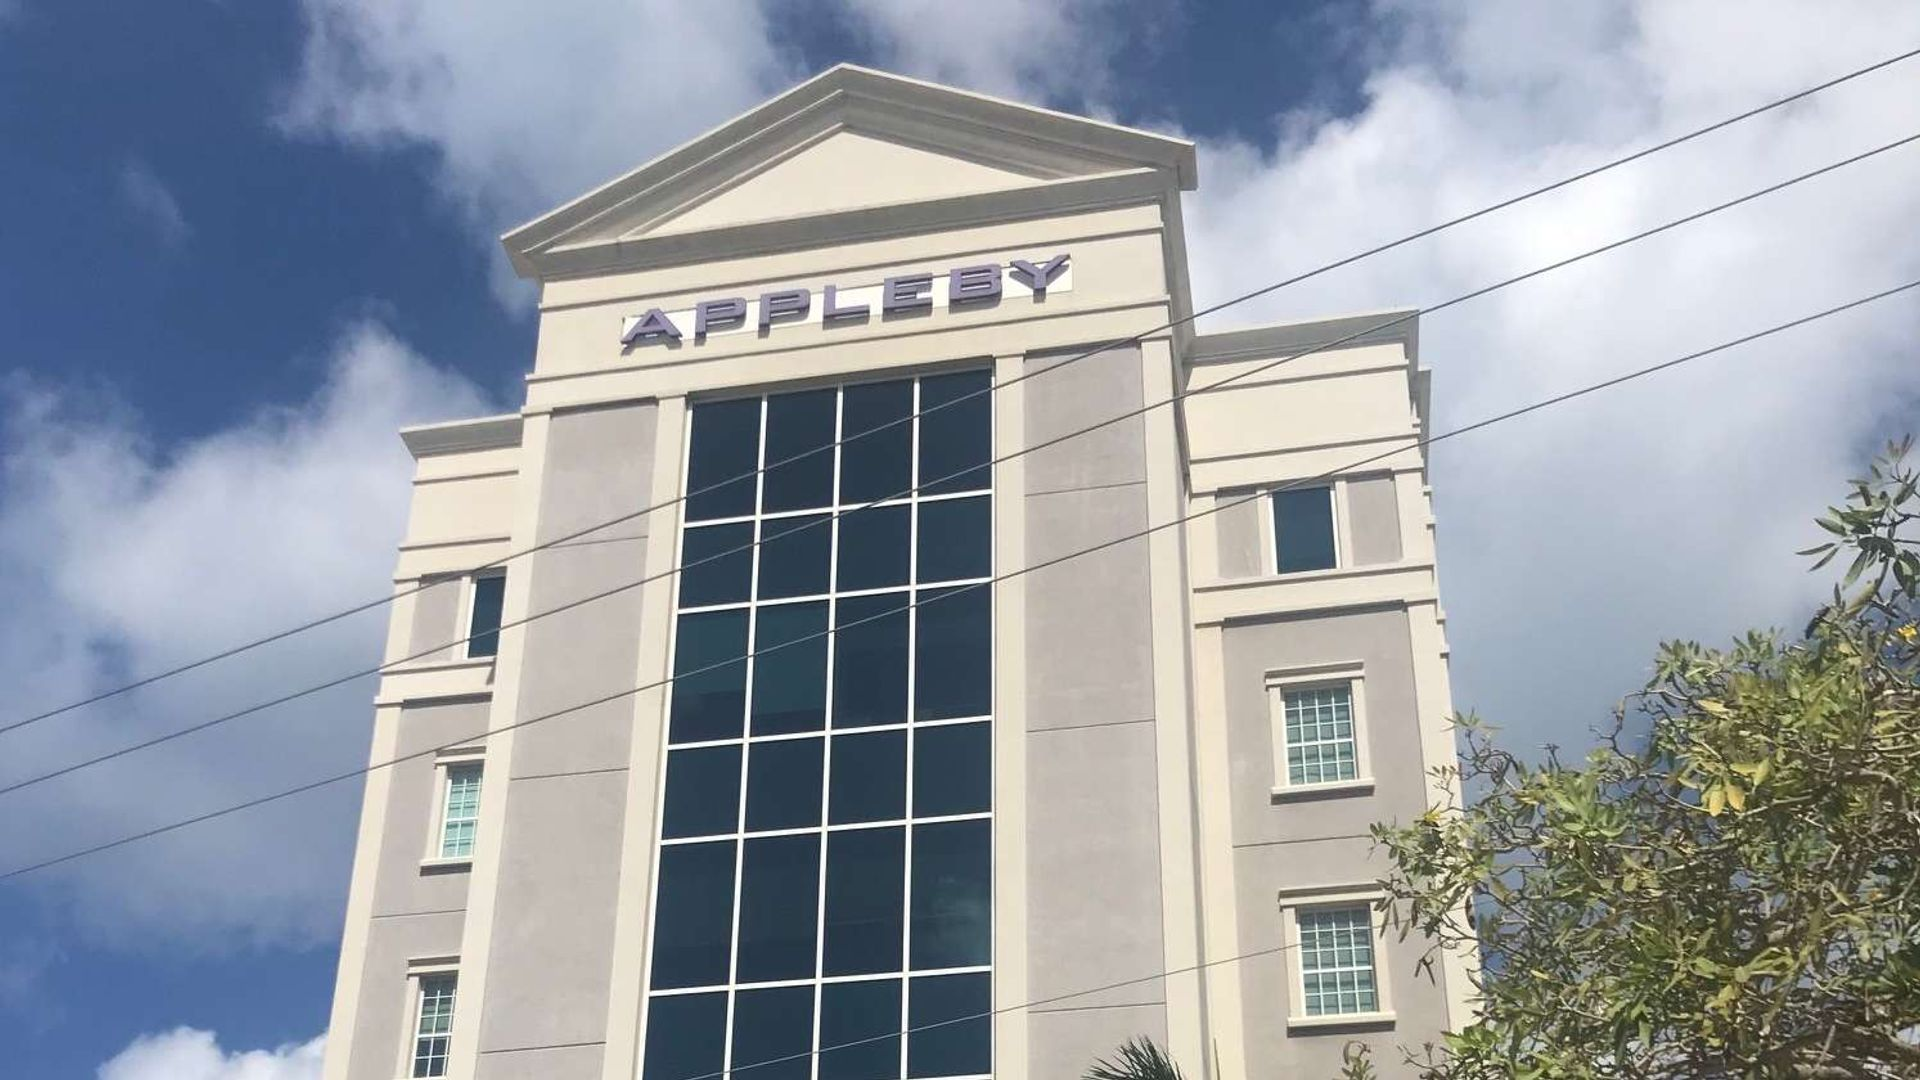 Appleby Tower, George Town